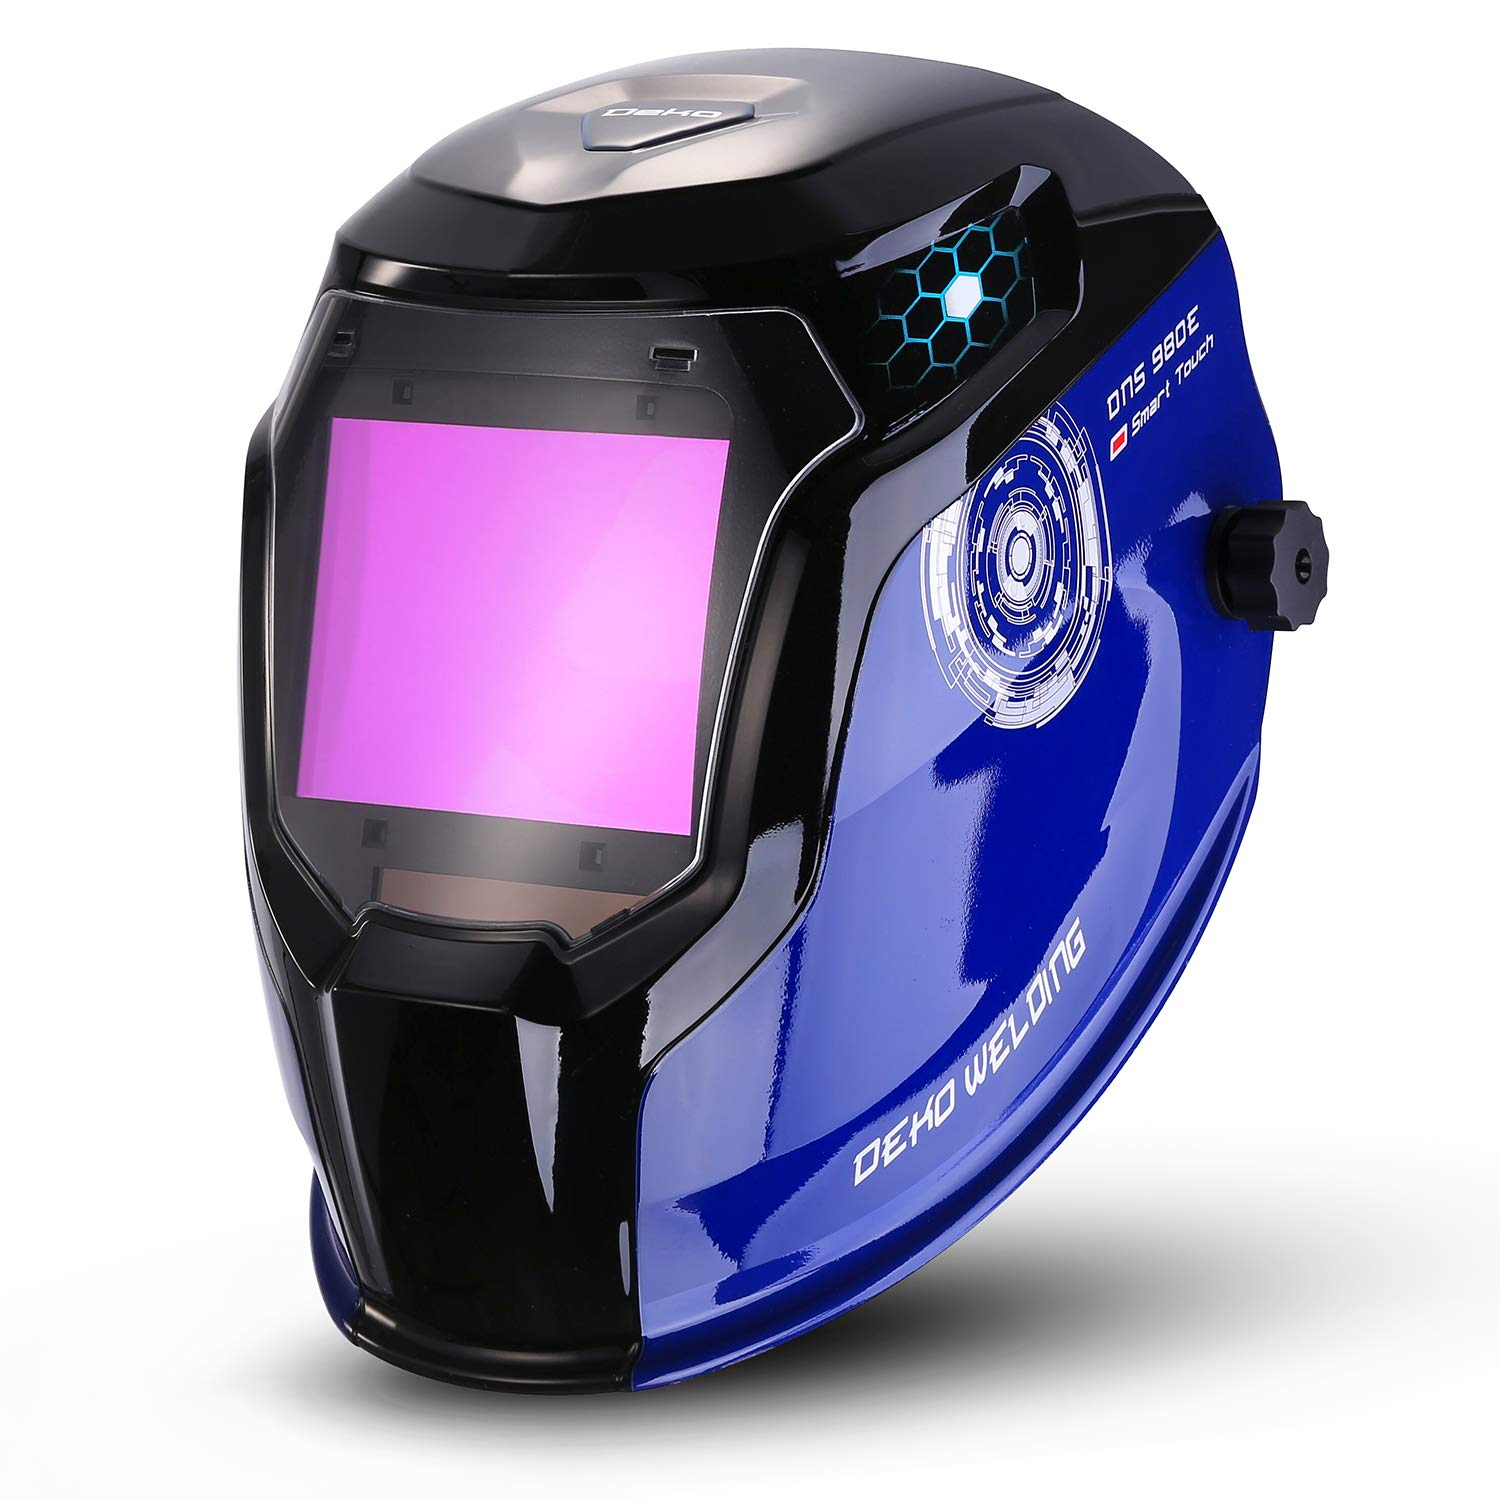 Durable Solar Powered Welding Helmet Auto Darkening Professional Hood with LED Digital Display Accurate Adjustable Shade Range 4/5-8/9-13 for Mig Tig Arc Weld Grinding Welder Mask